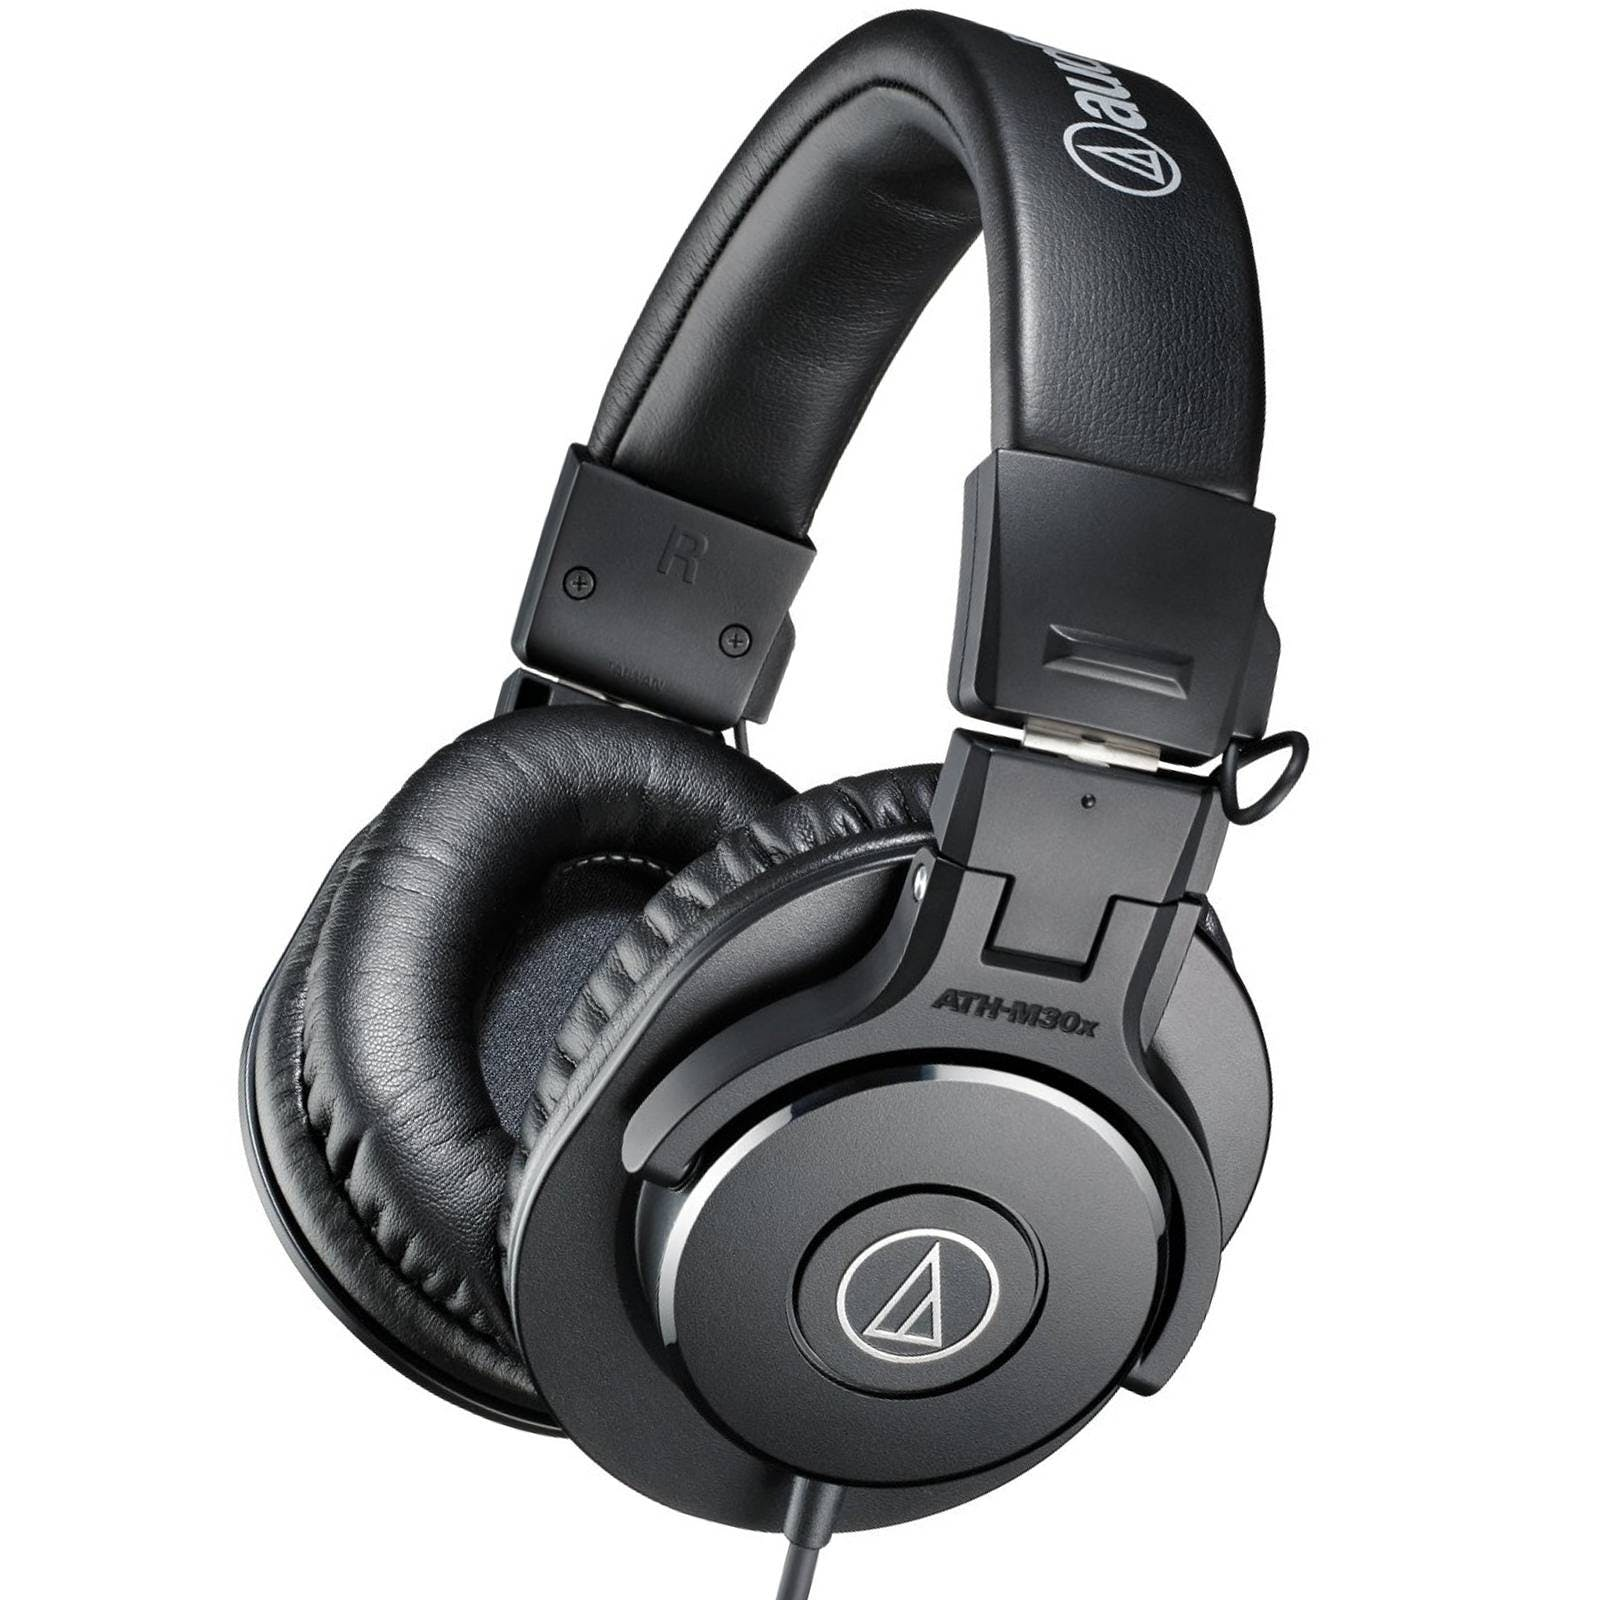 Image result for Audio Technica ATH-M30x